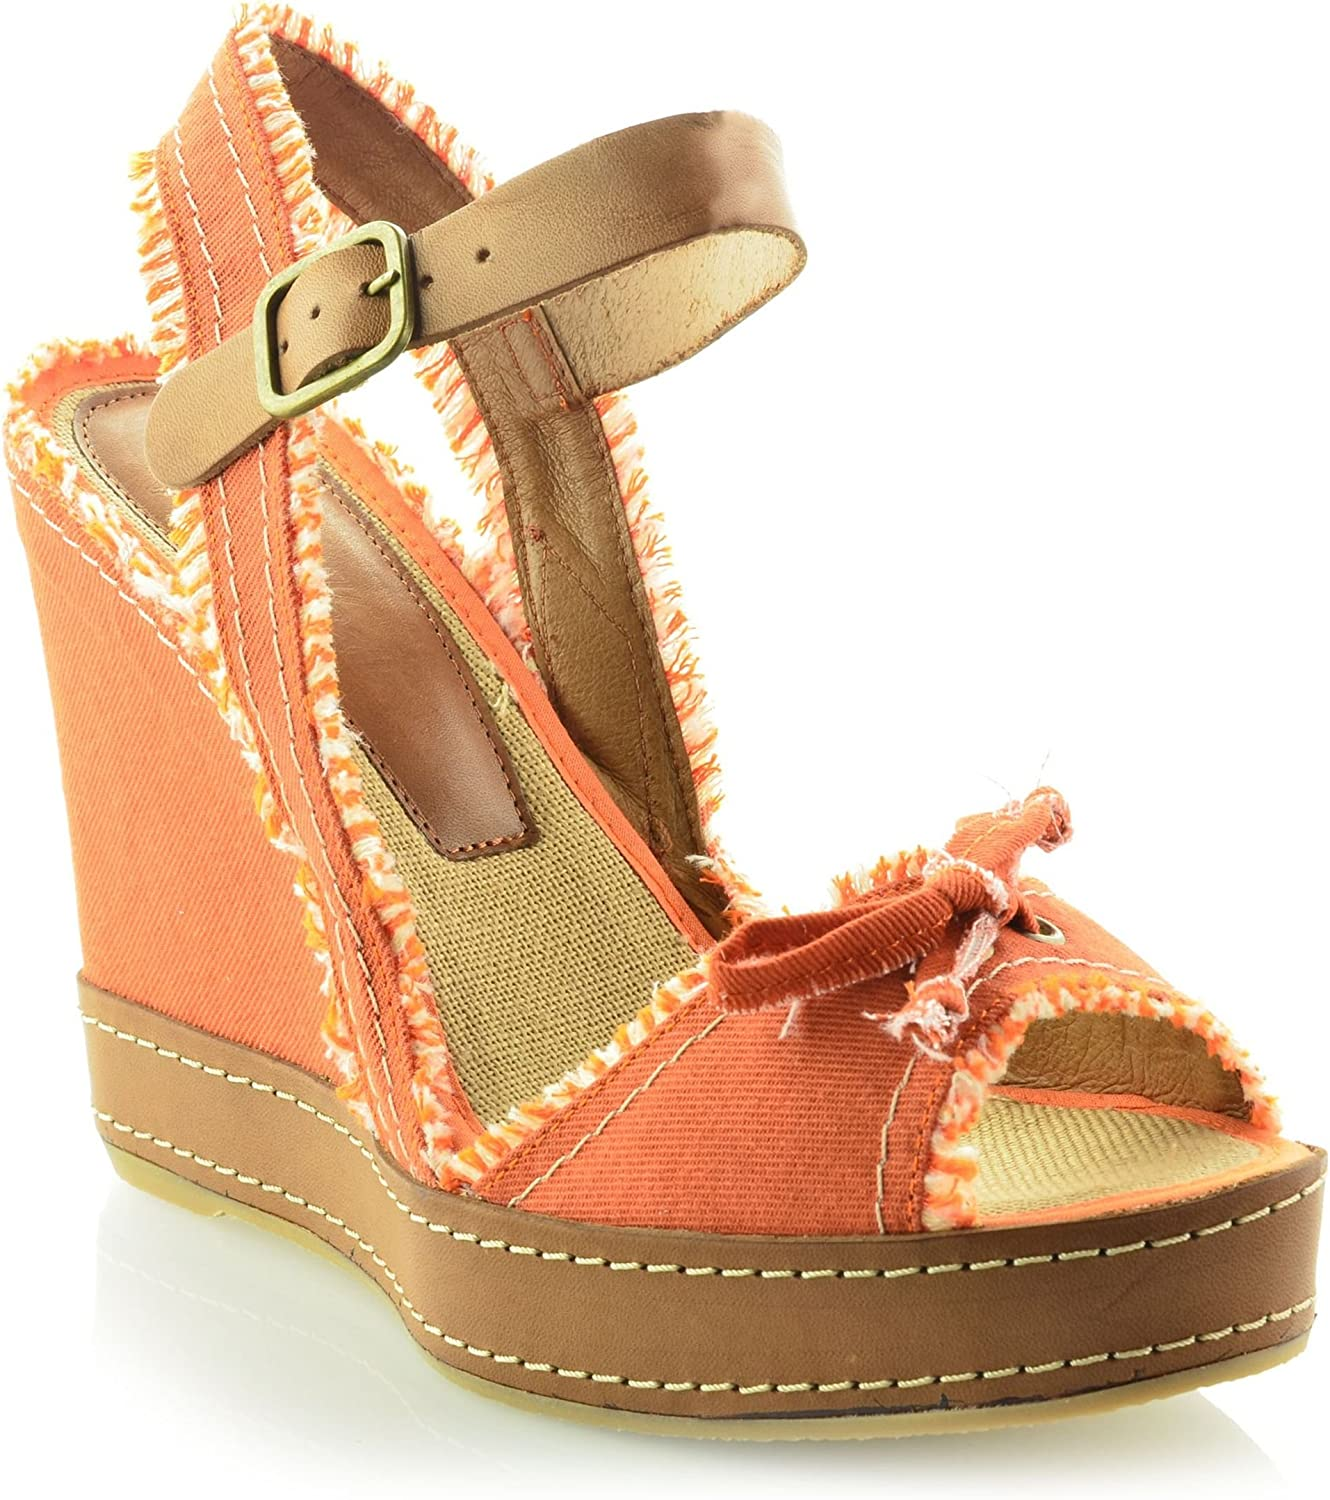 MTBALI - Wedge Sandals, Woman- Model San Diego